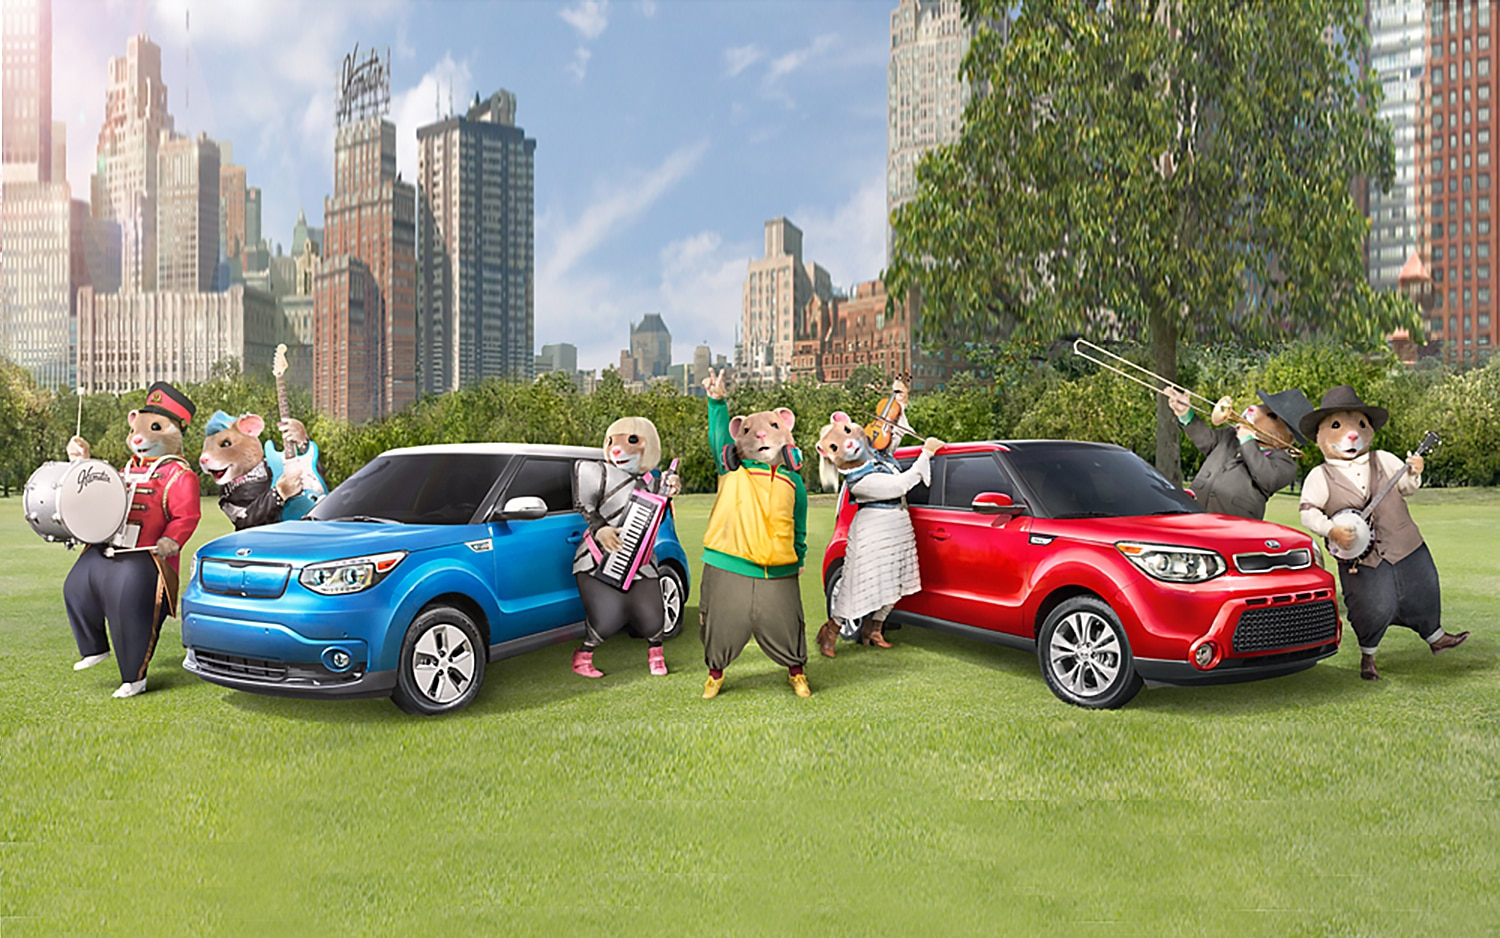 Musical Hamsters Return for 2016 Kia Soul Commercial (W/Video)